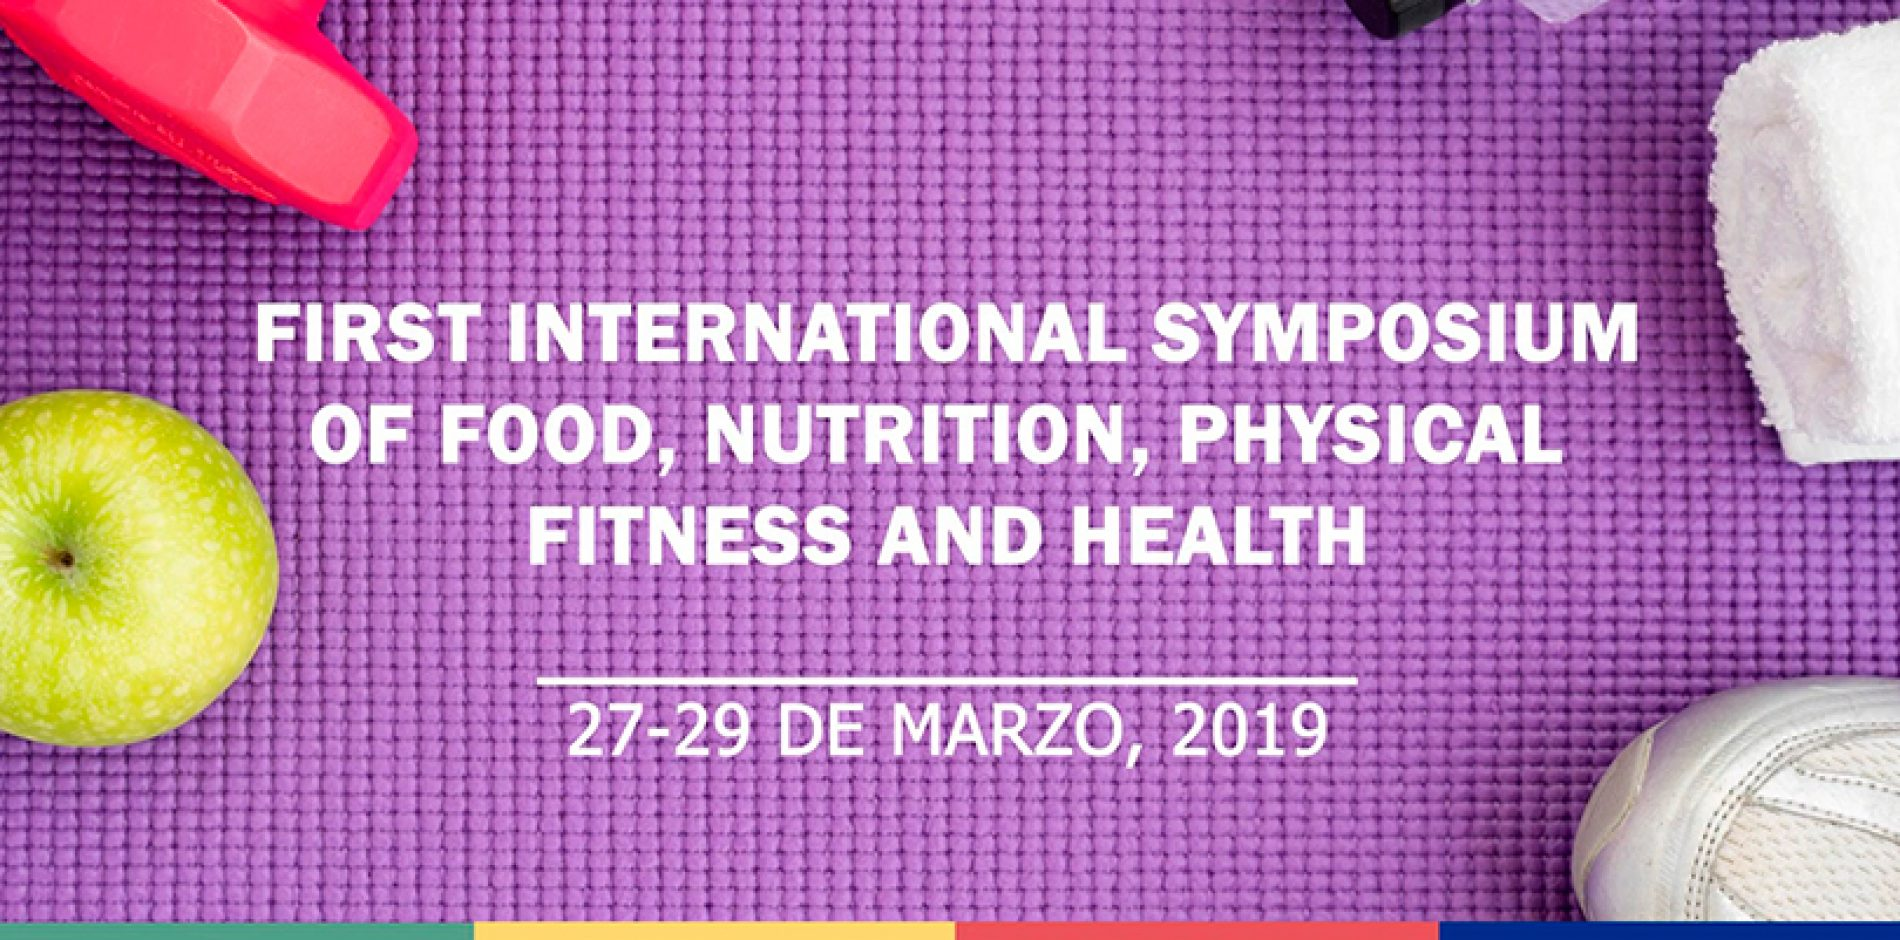 First International Symposium of Food, Nutrition, Physical Fitness and Health